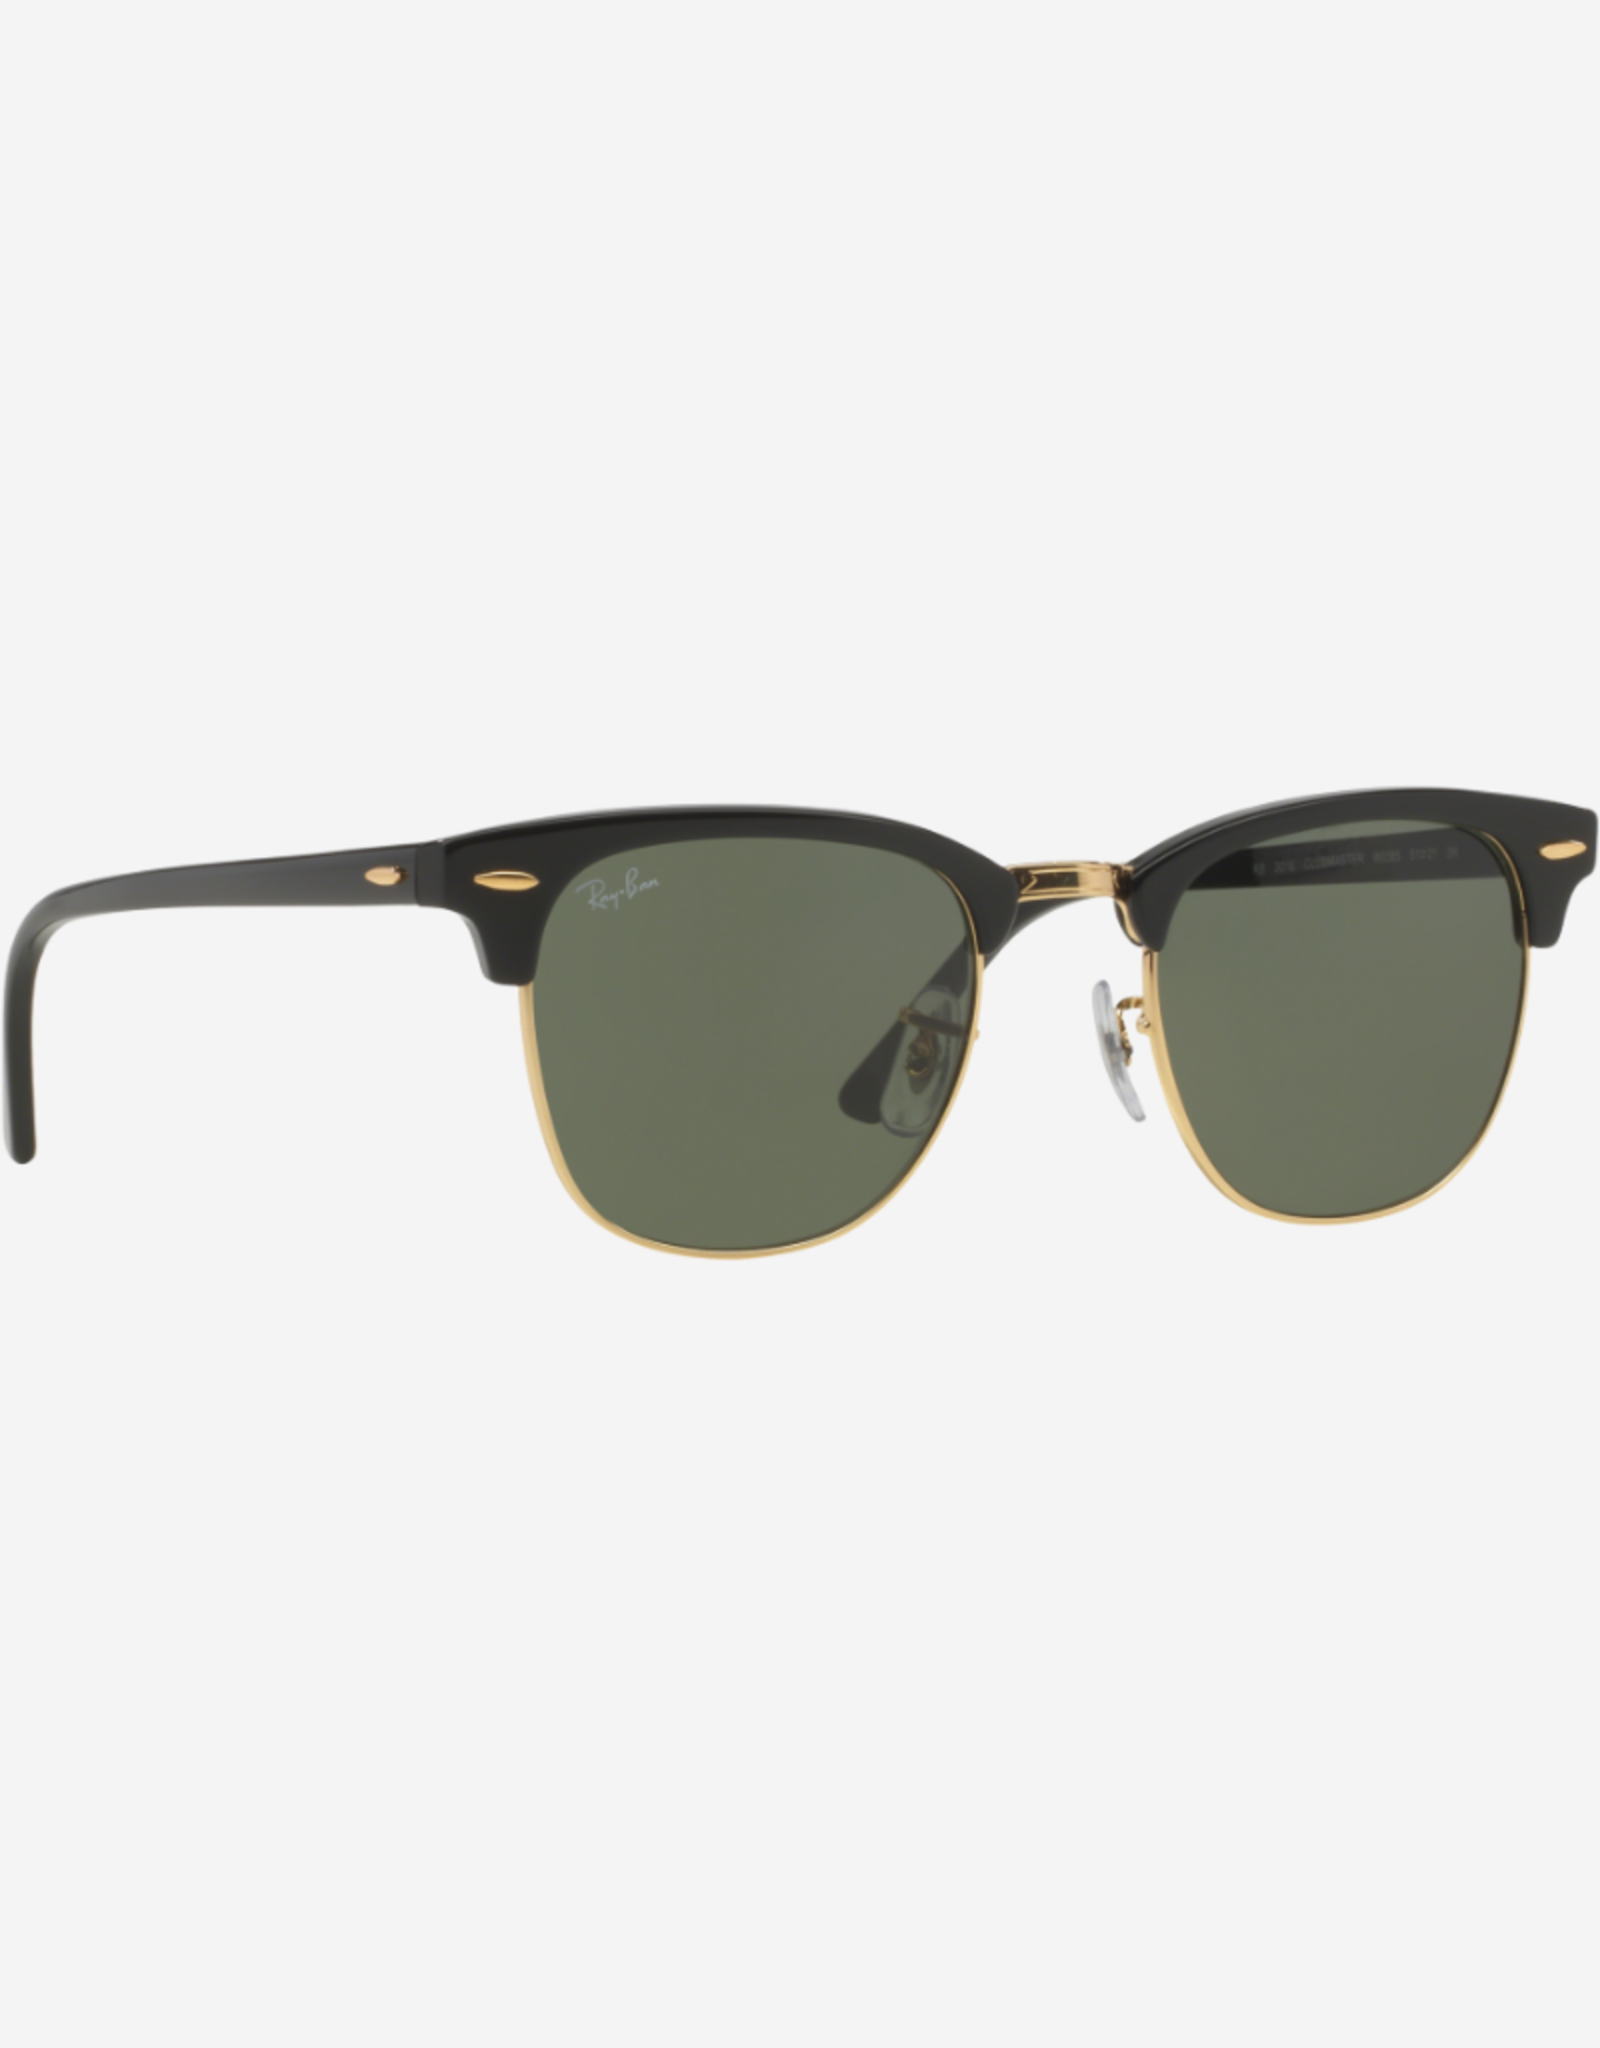 RAY BAN RAY BAN CLUBMASTER ORB3016-W036551